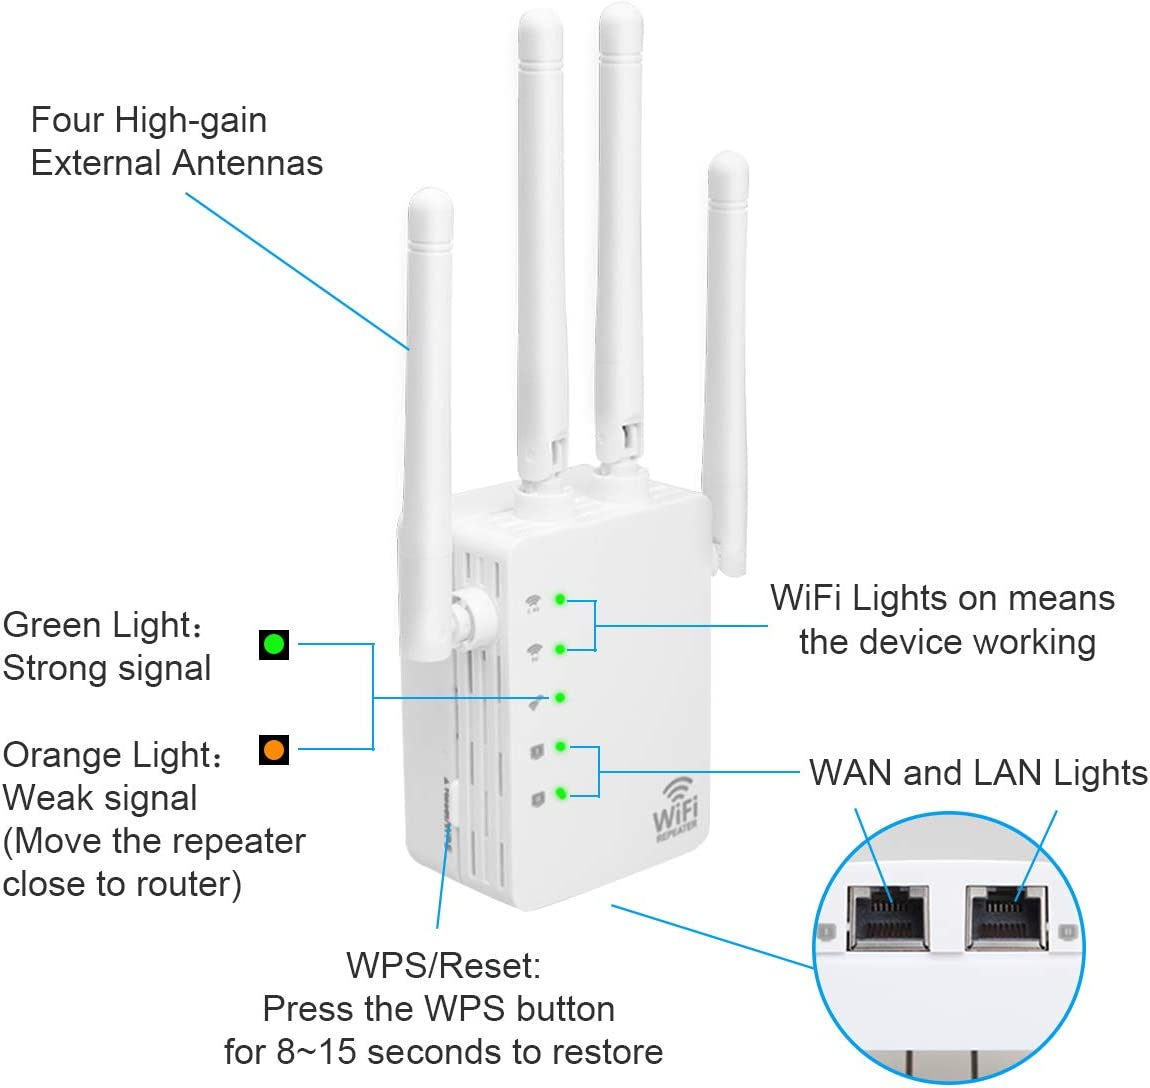 ELA Dual Band WiFi Extender 1200Mbps 4 External Antennas WIFI Range Extender Booster Wireless Signal Repeater 5GHz /& 2.4GHz with 2 Ethernet Port UK Plug